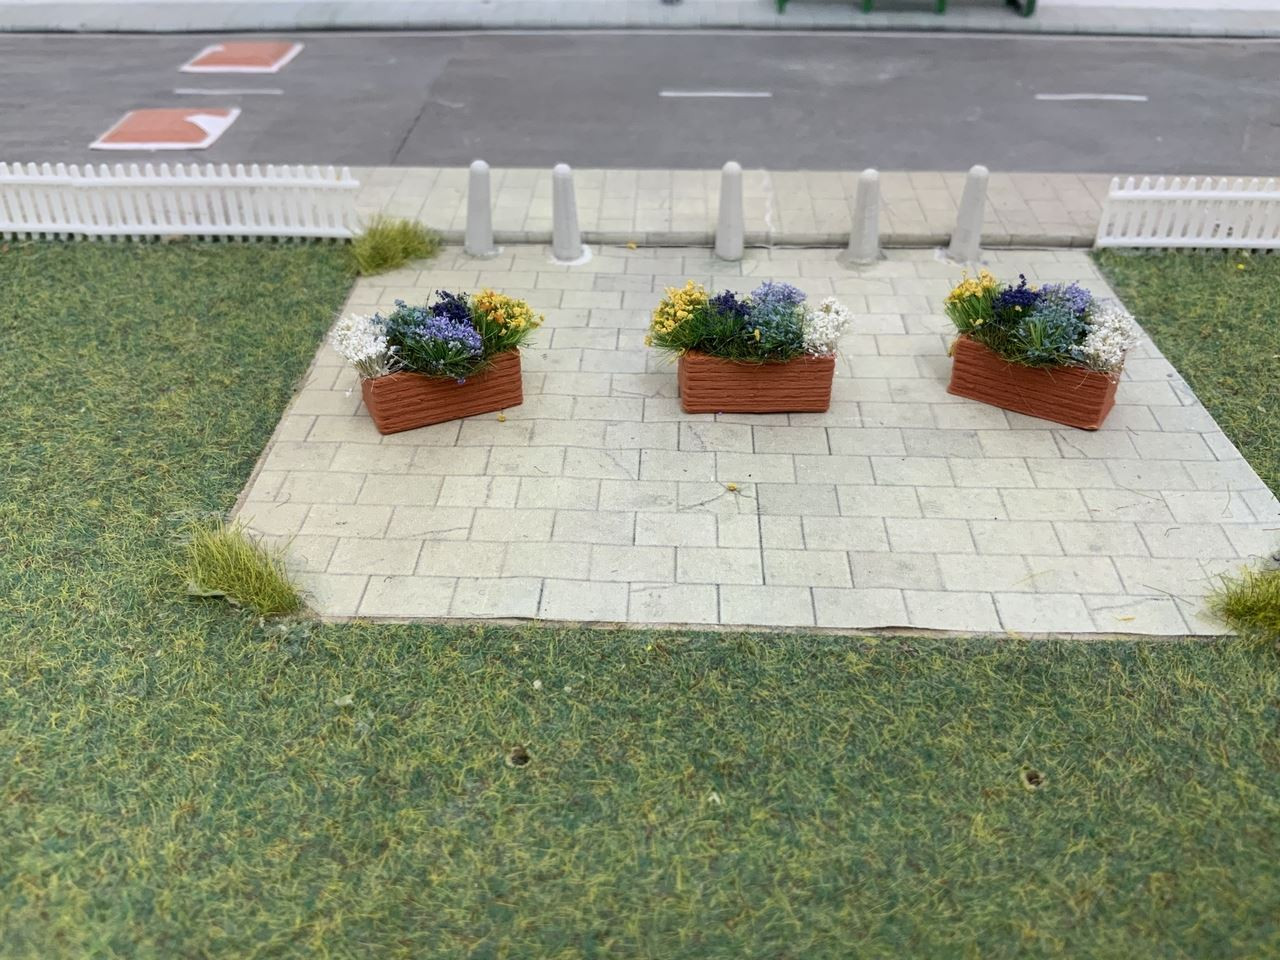 1.76 3D Printed flower planters with flowers - 3pk (straight)